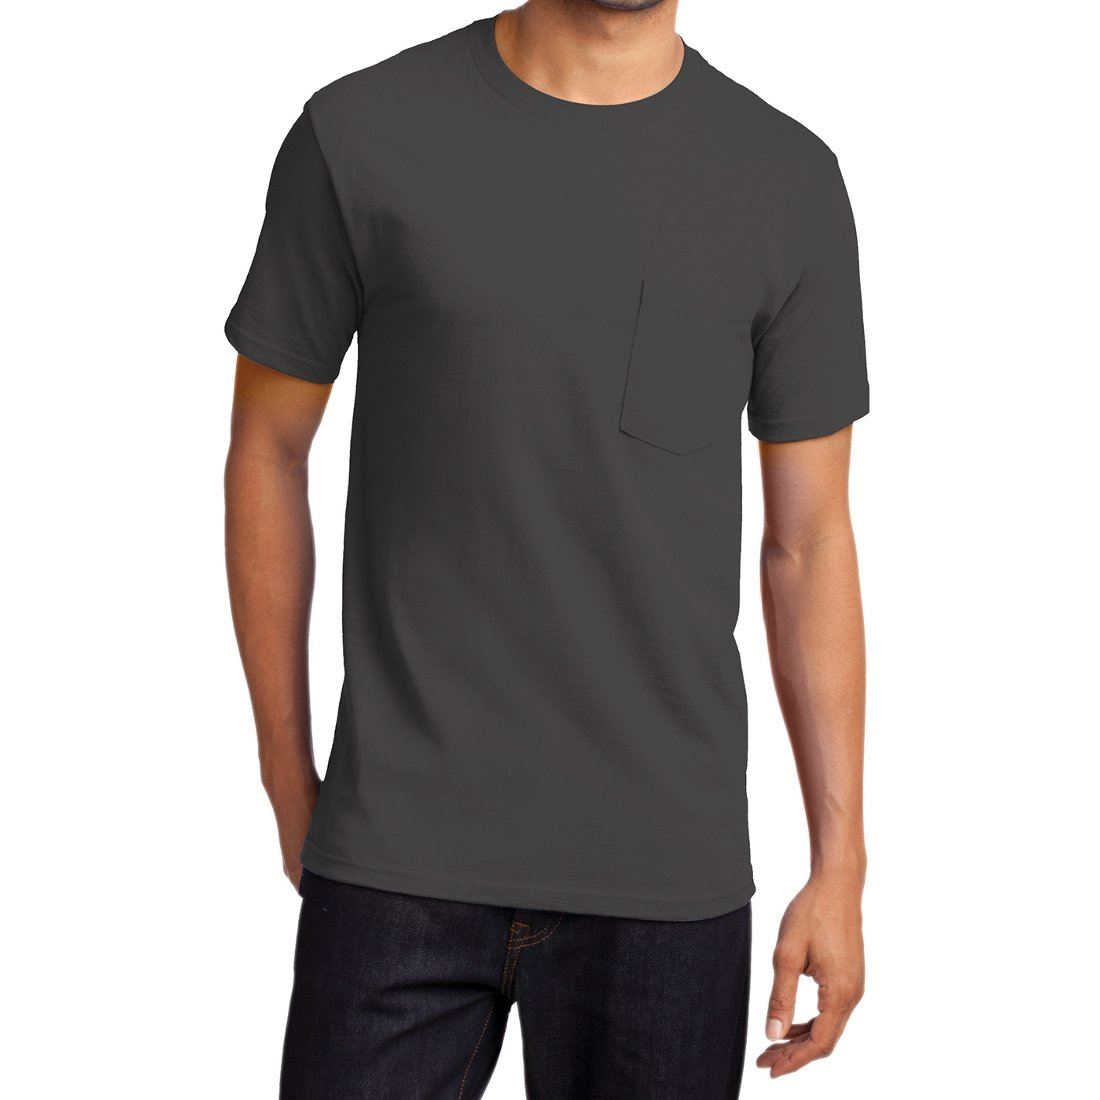 Men's Essential T Shirt with Pocket Charcoal